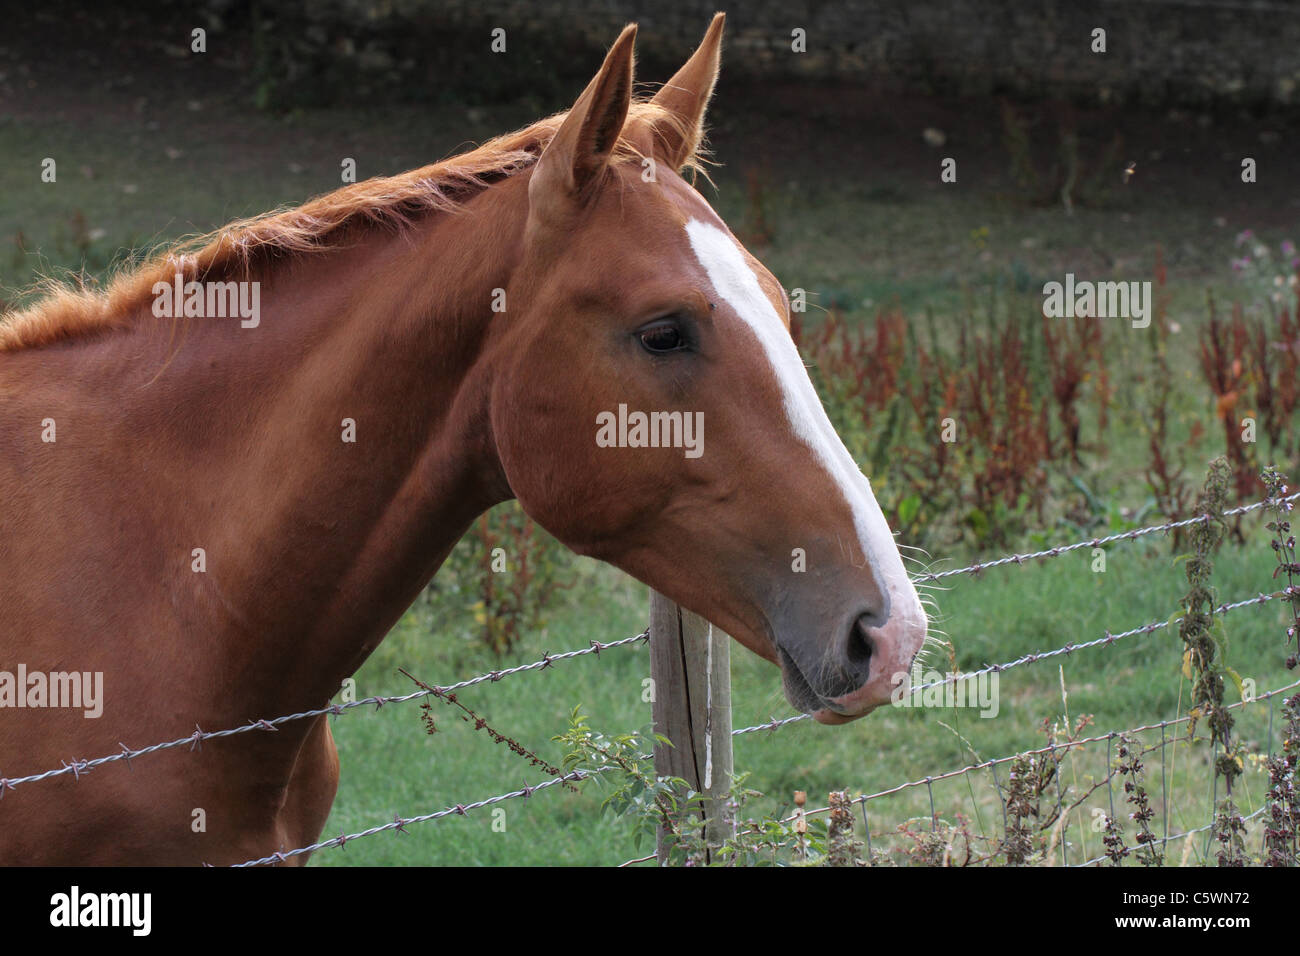 Barbed Wire Fence For Horses Center Amperes Power Supply Circuit Design Using Isl8036 Switching Horse Stock Photos Rh Alamy Com